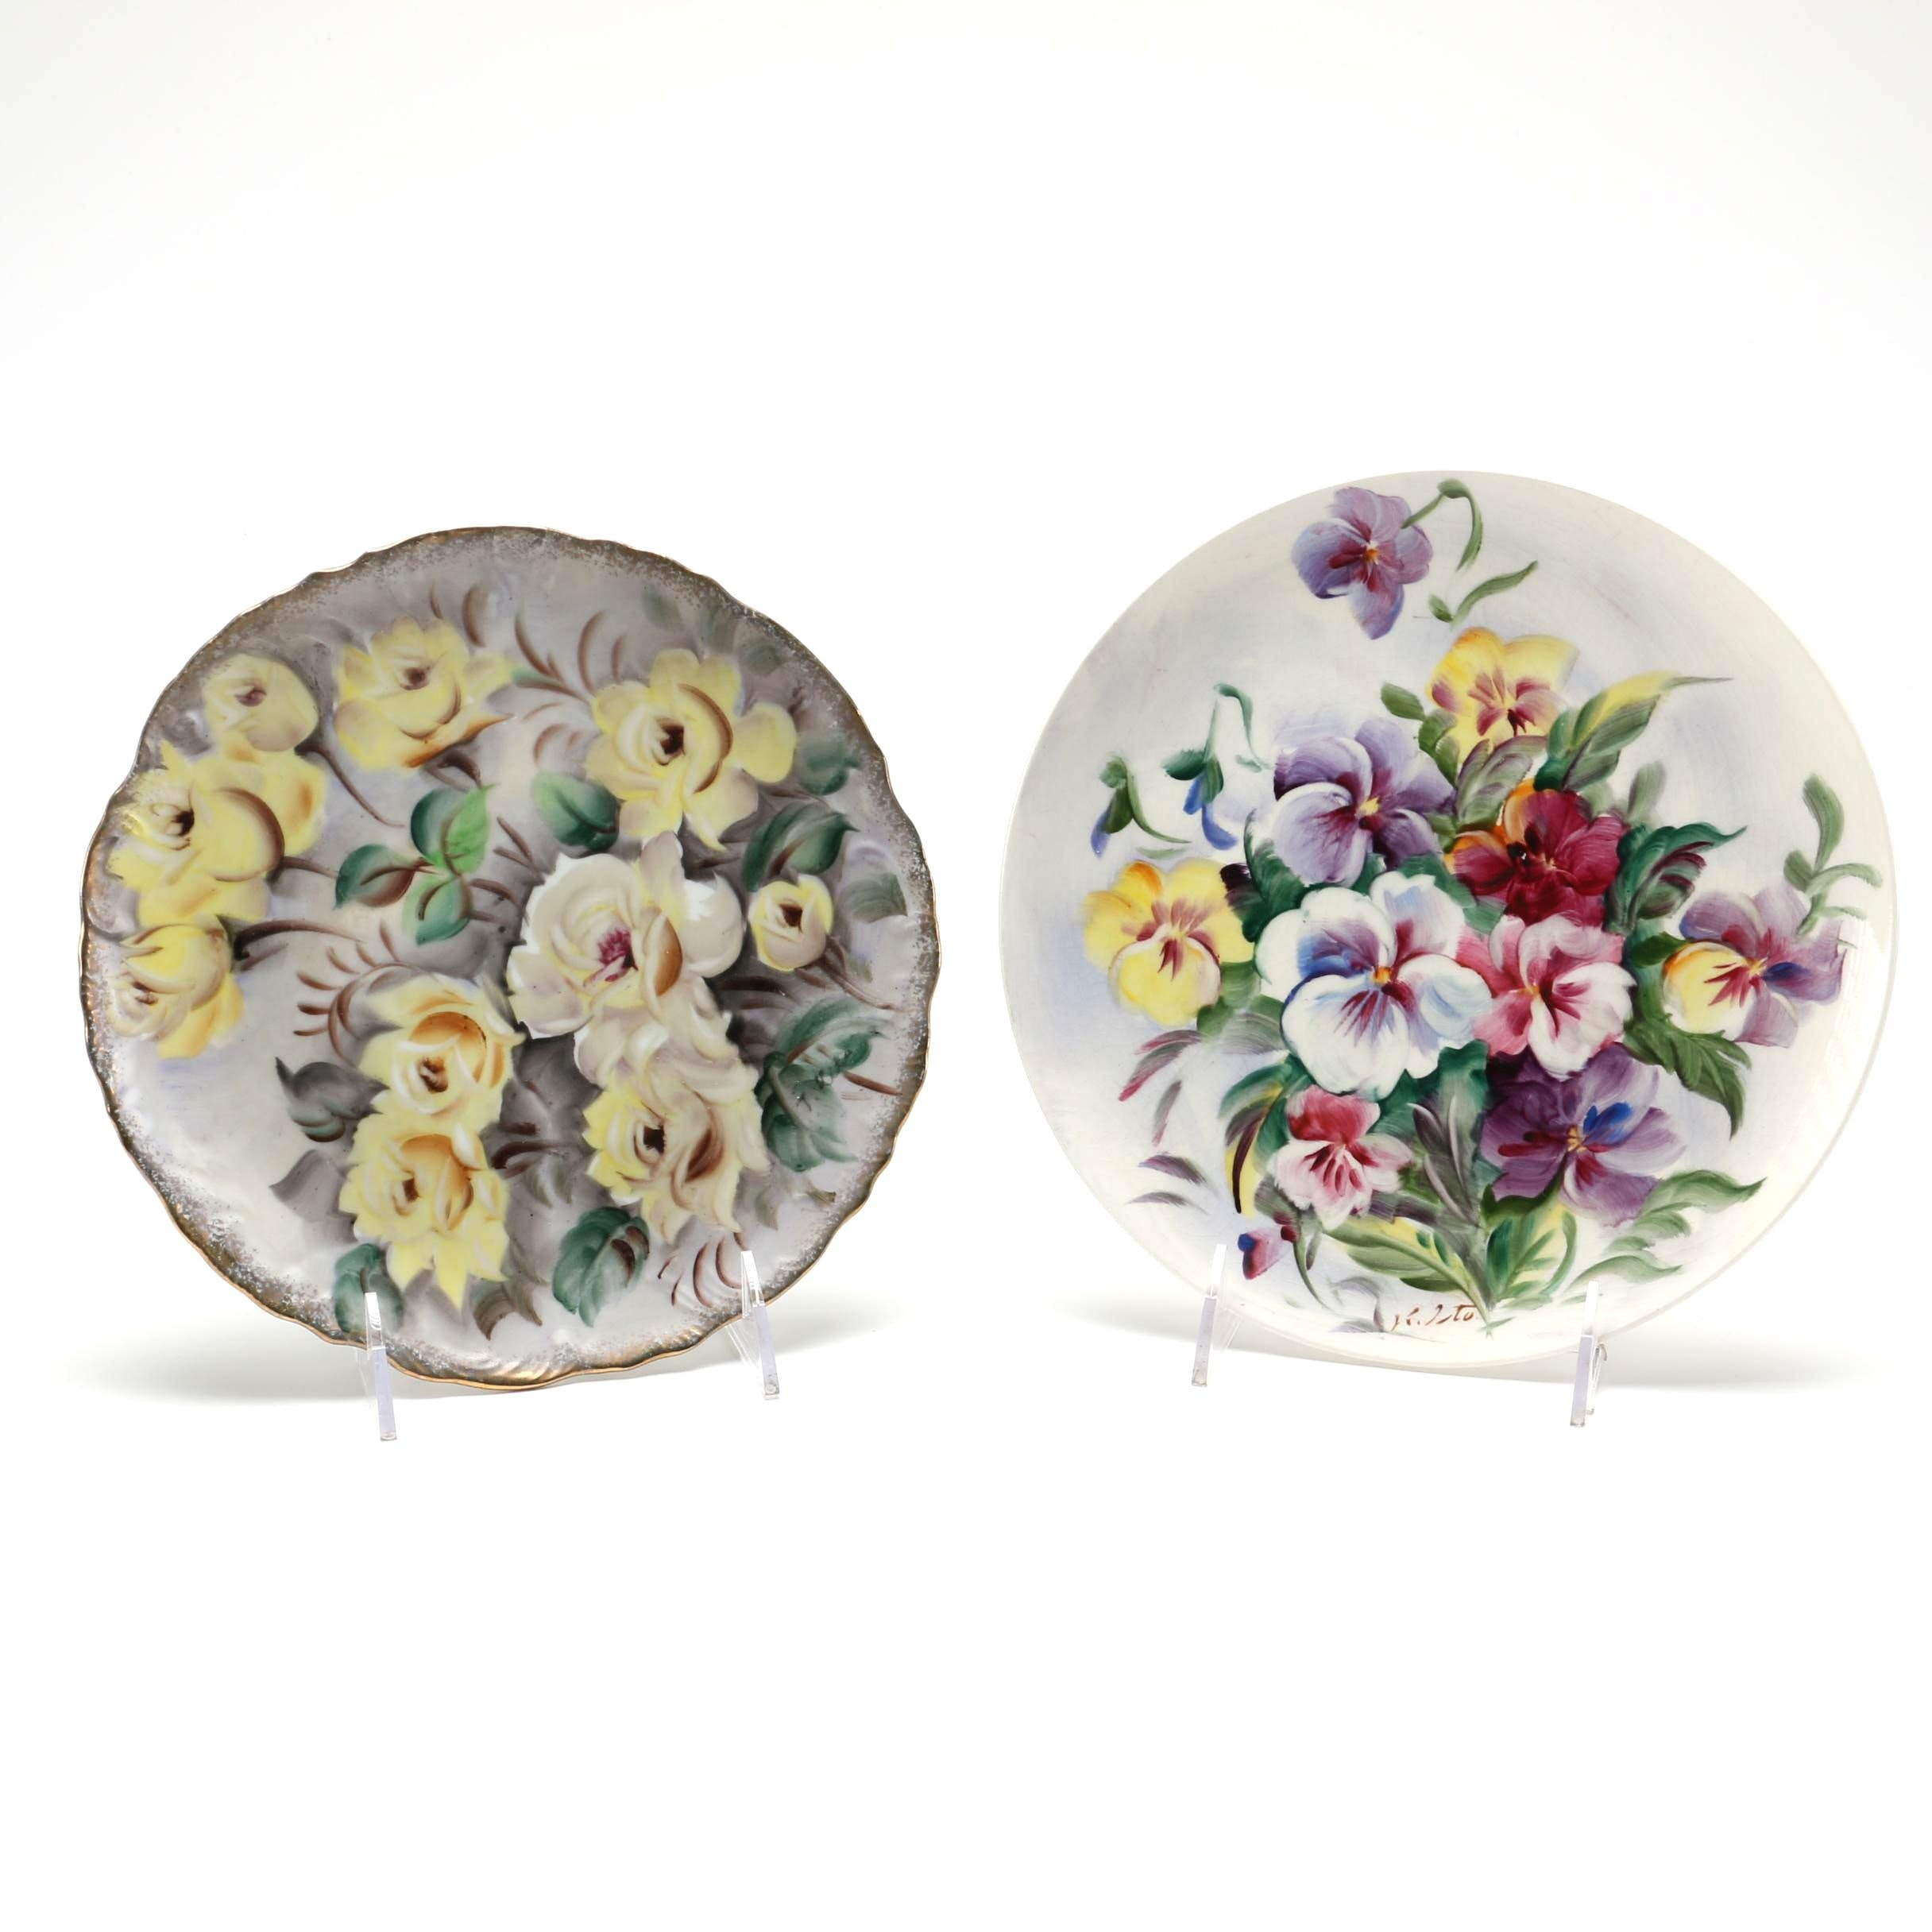 Pair of Hand Painted Ucagco Plates